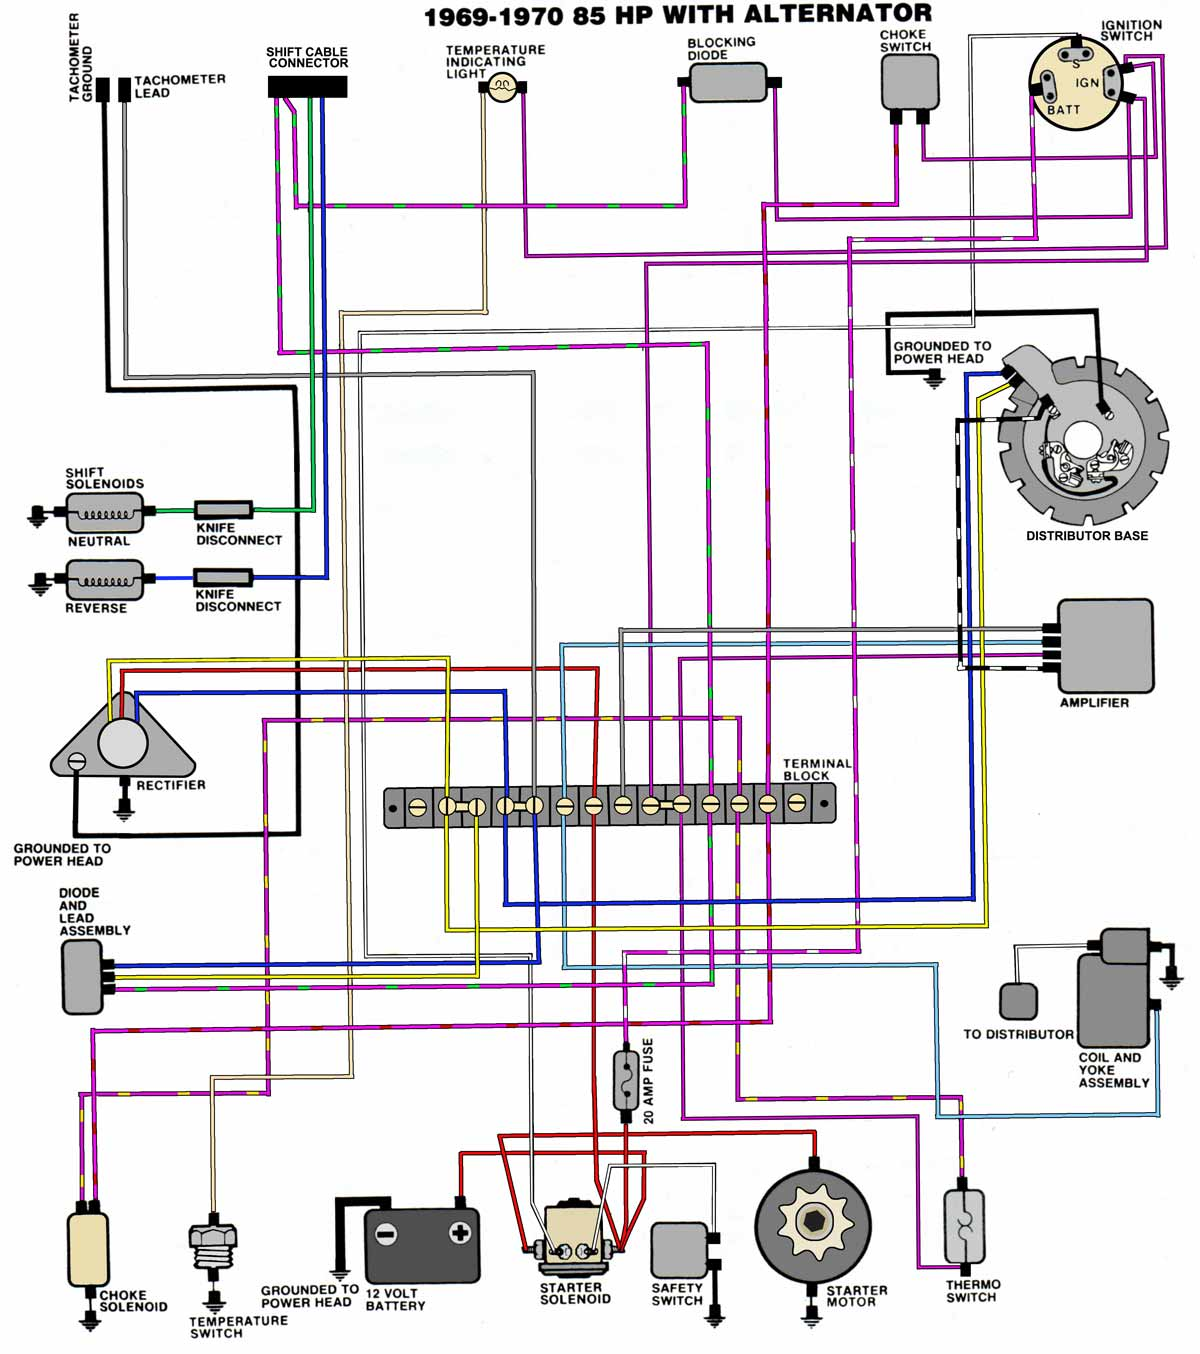 Mercury 35 Hp Wiring Diagram Schematics 2002 Mazda Millenia 1997 50 Evinrude Sample Outboard Color Code Johnson